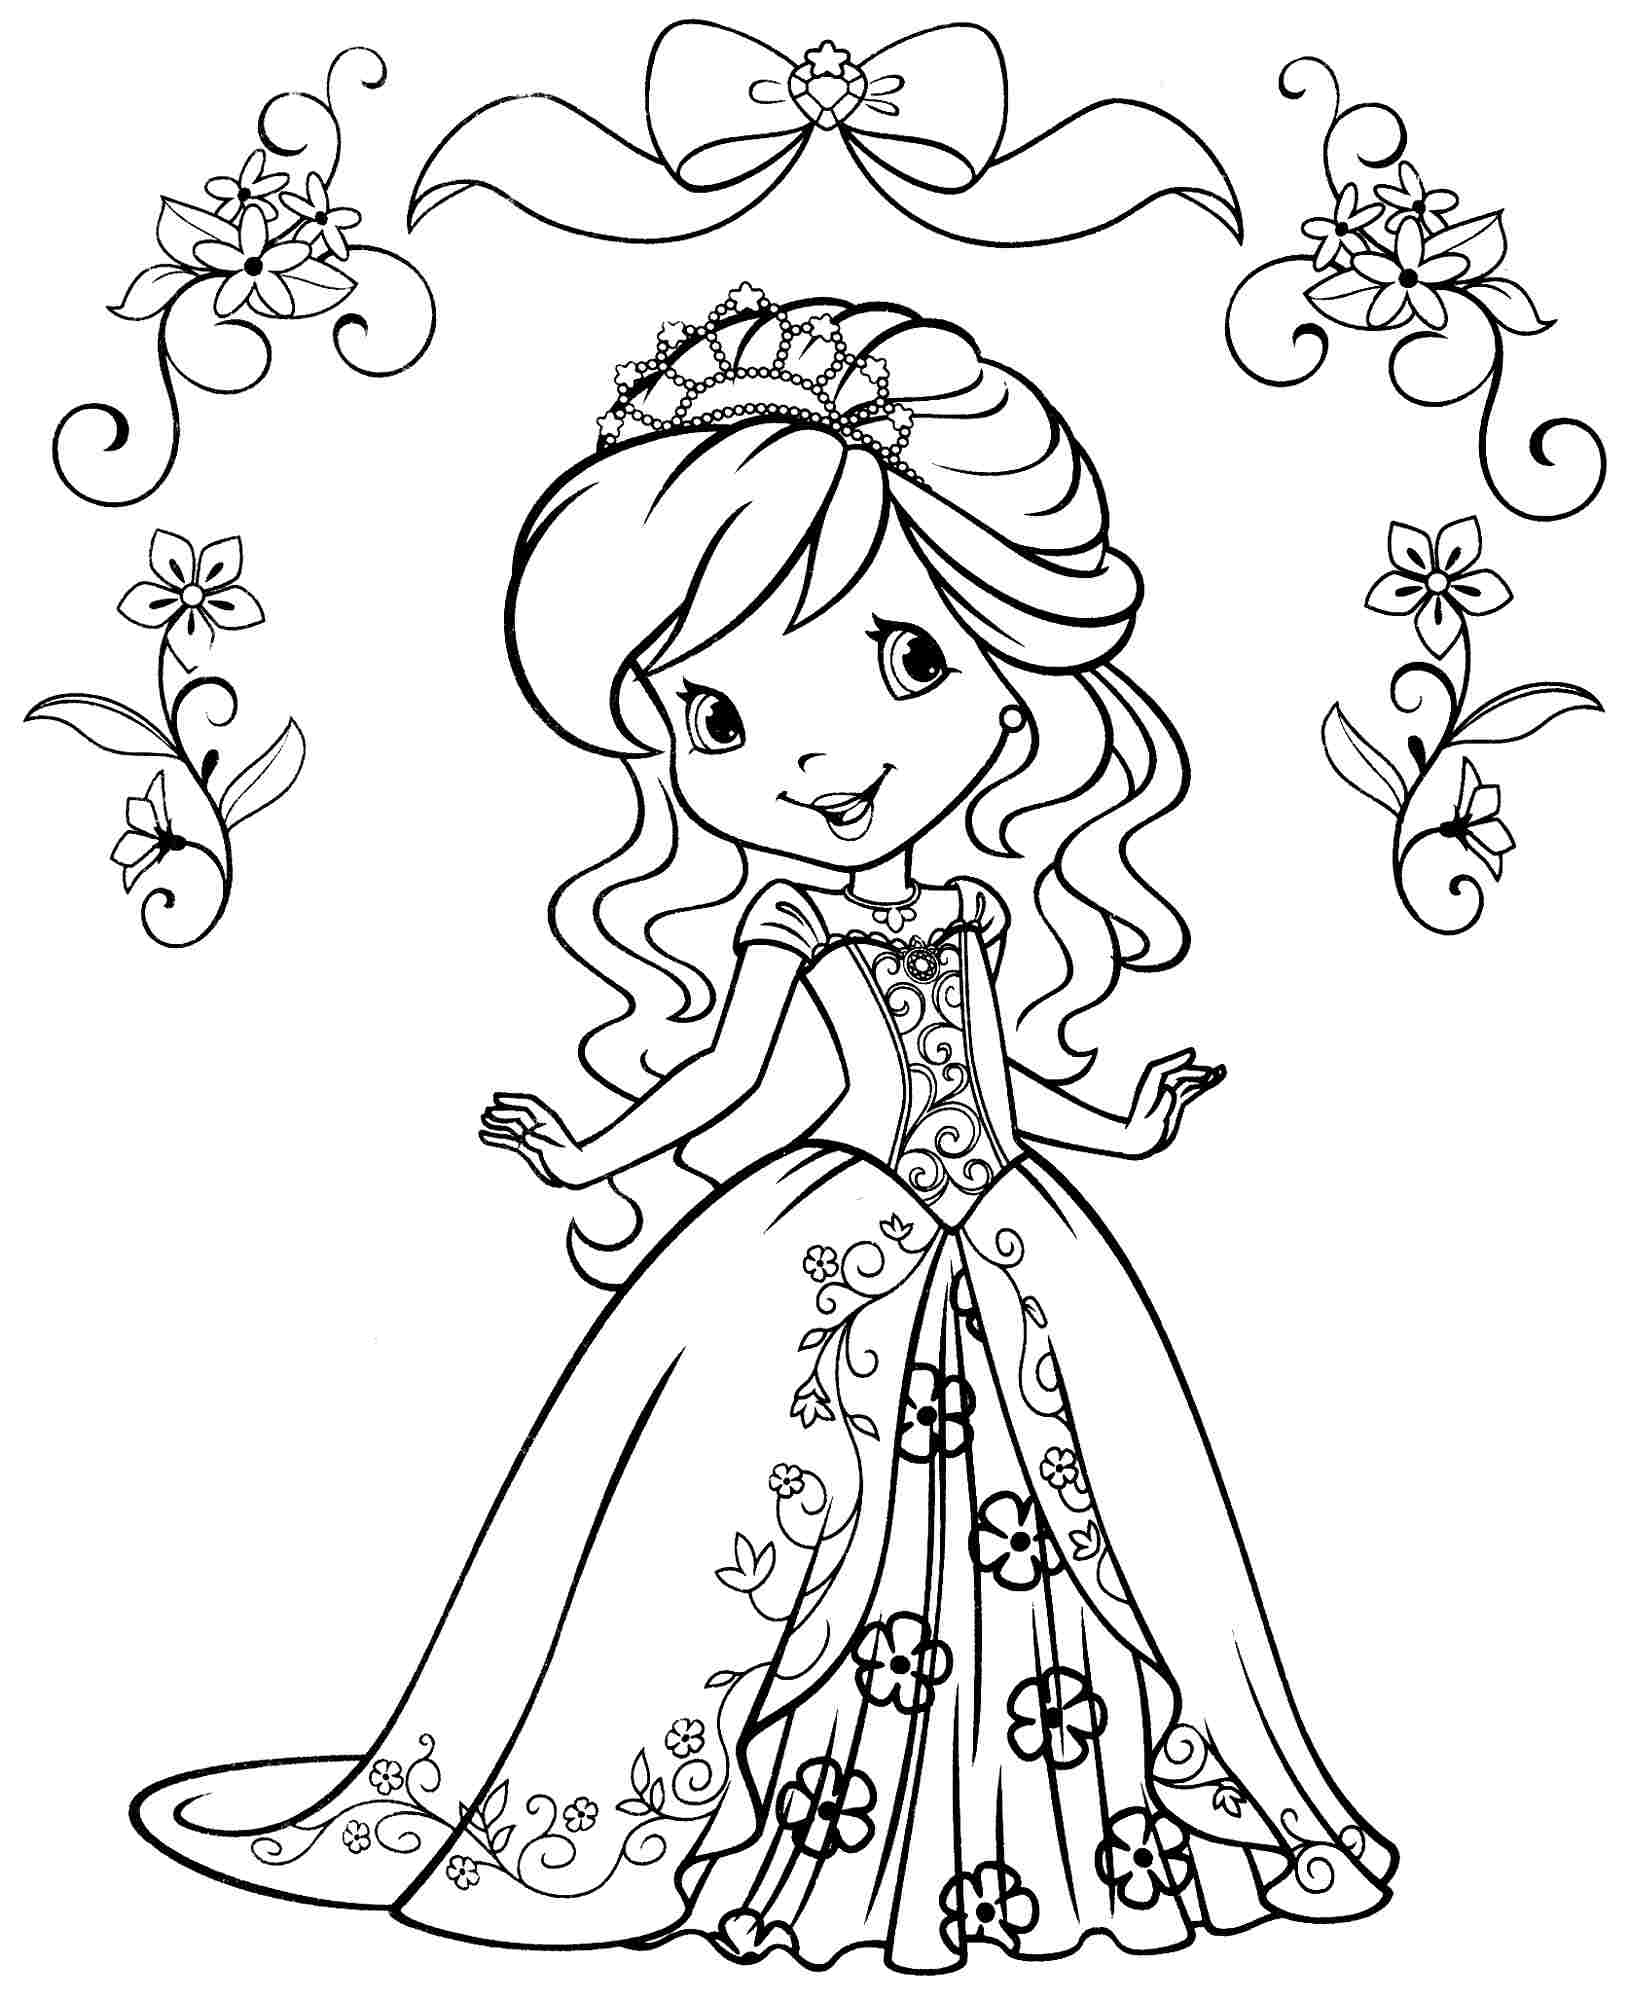 1629x2000 Coloring Pages Strawberry Shortcake Coloring Pages 2 Best Free